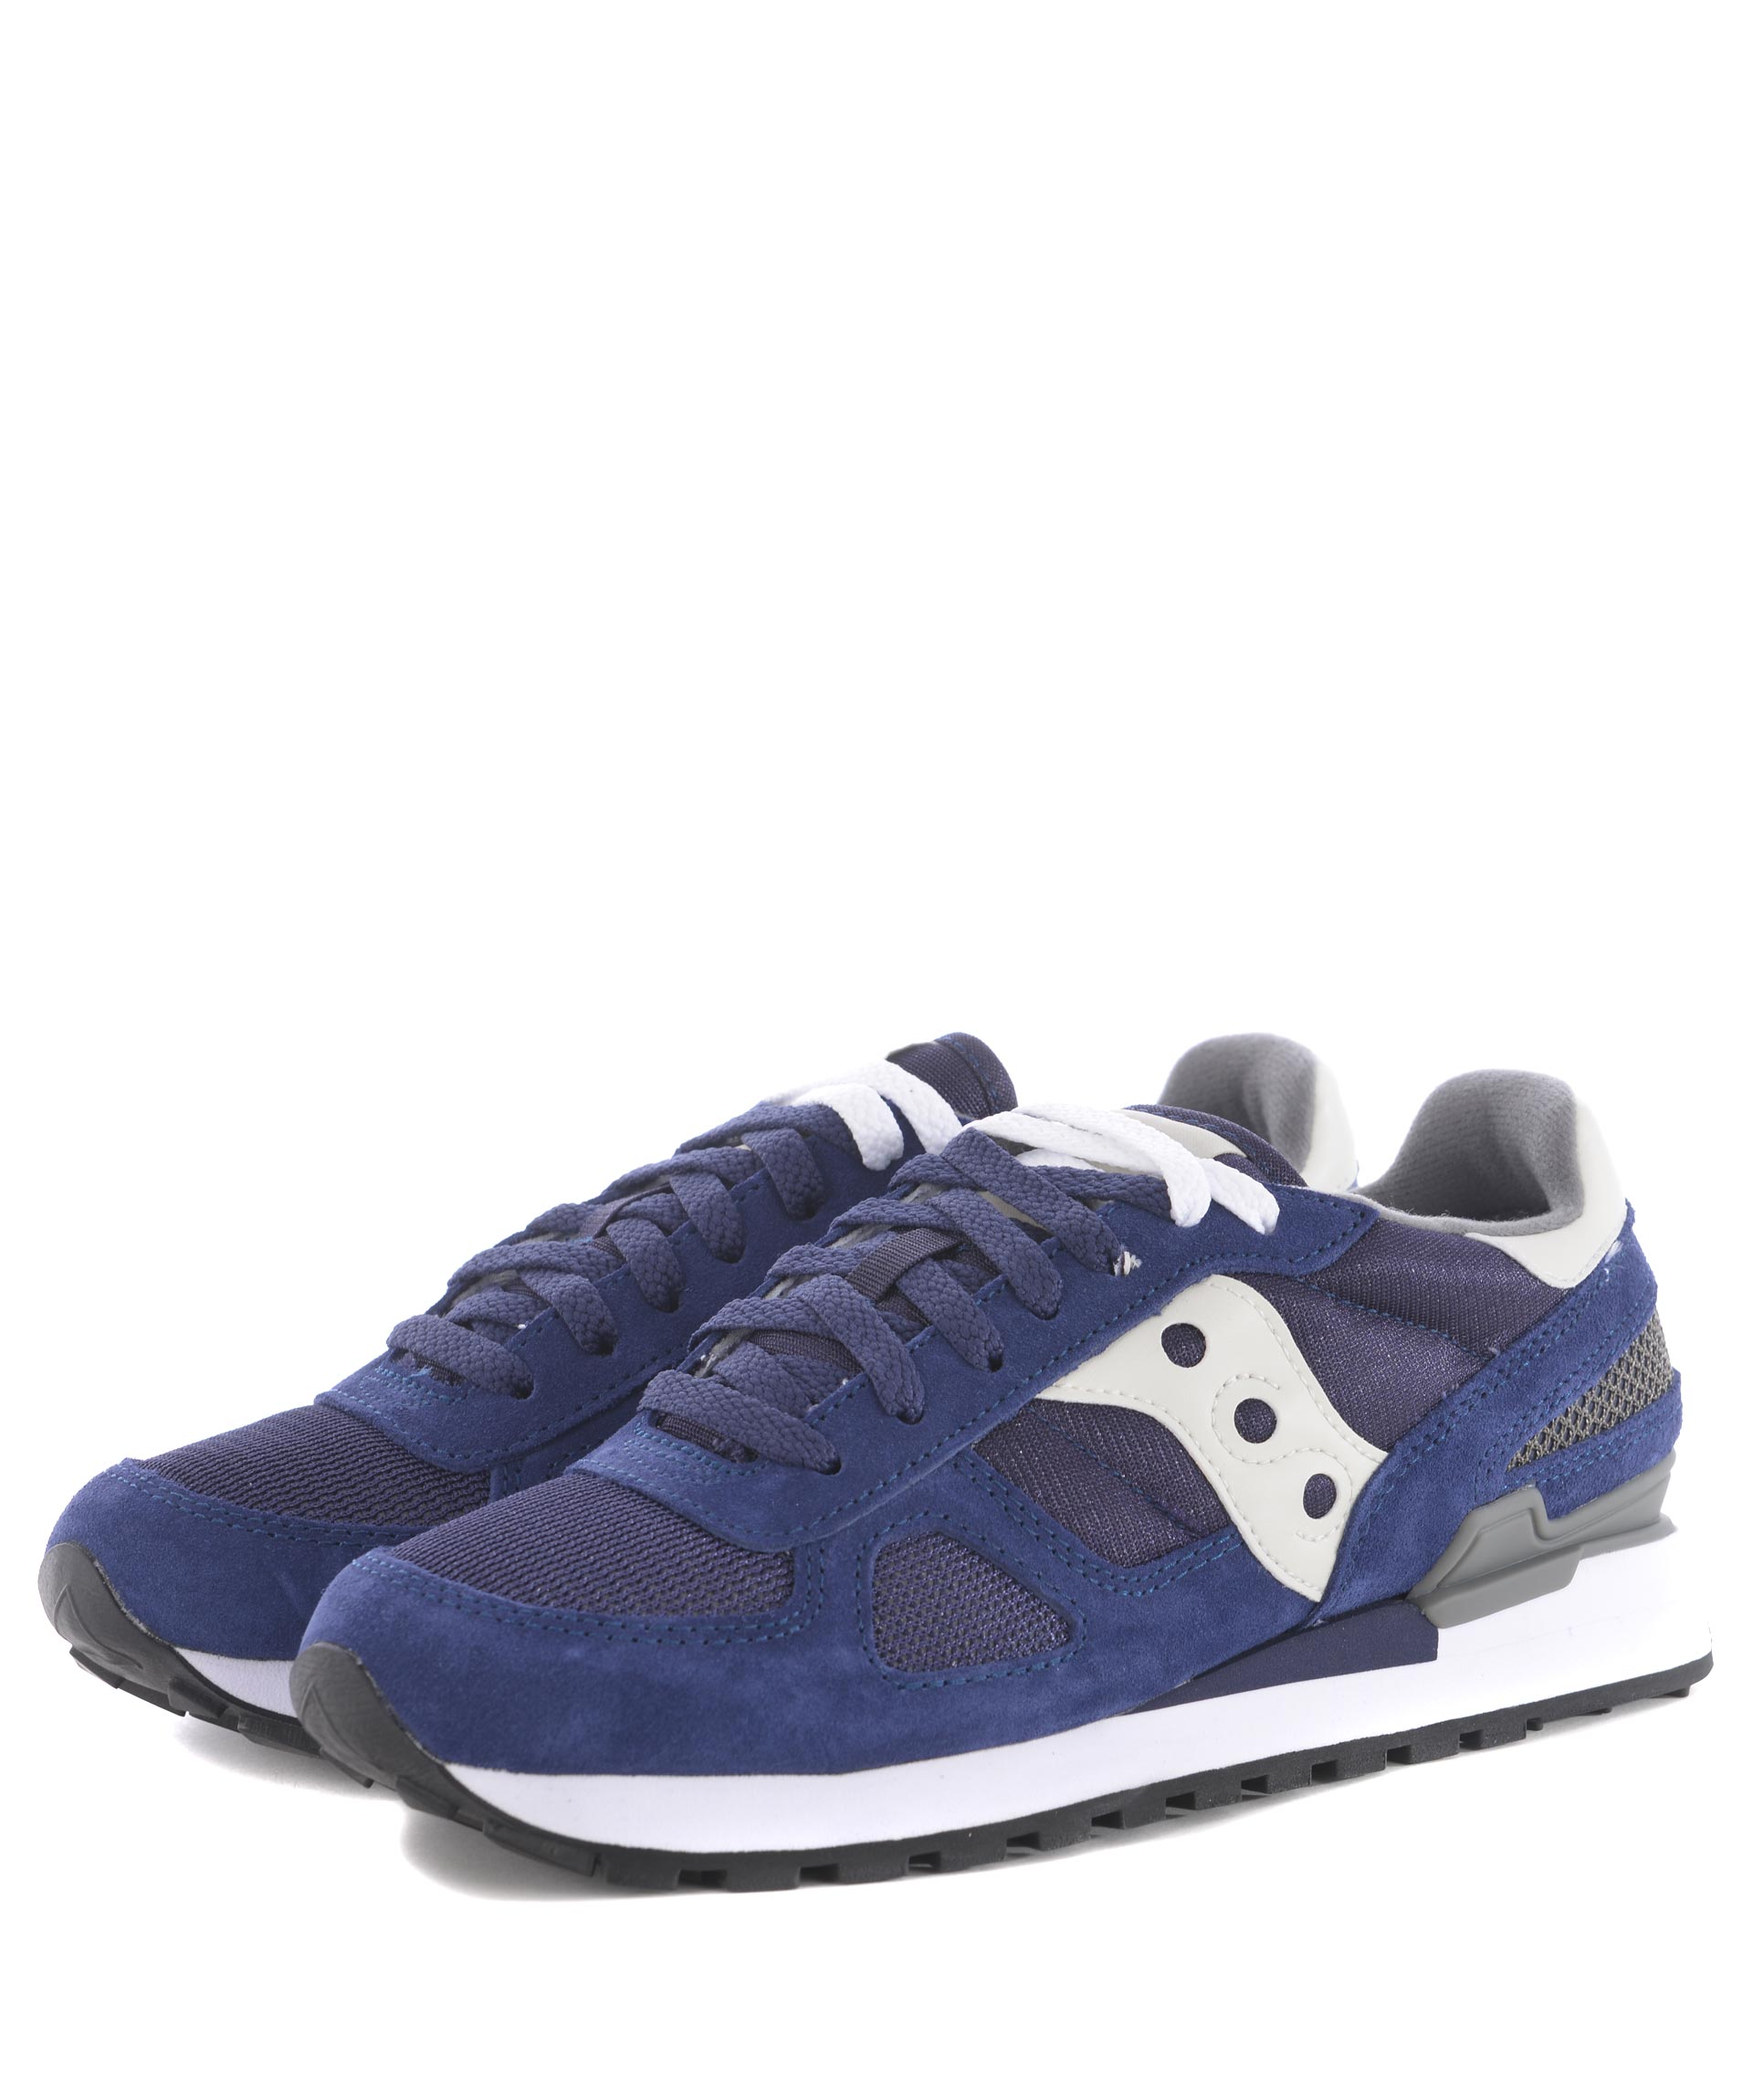 SAUCONY SHADOW ORIGINAL 2108668 SNEAKERS MODA Uomo